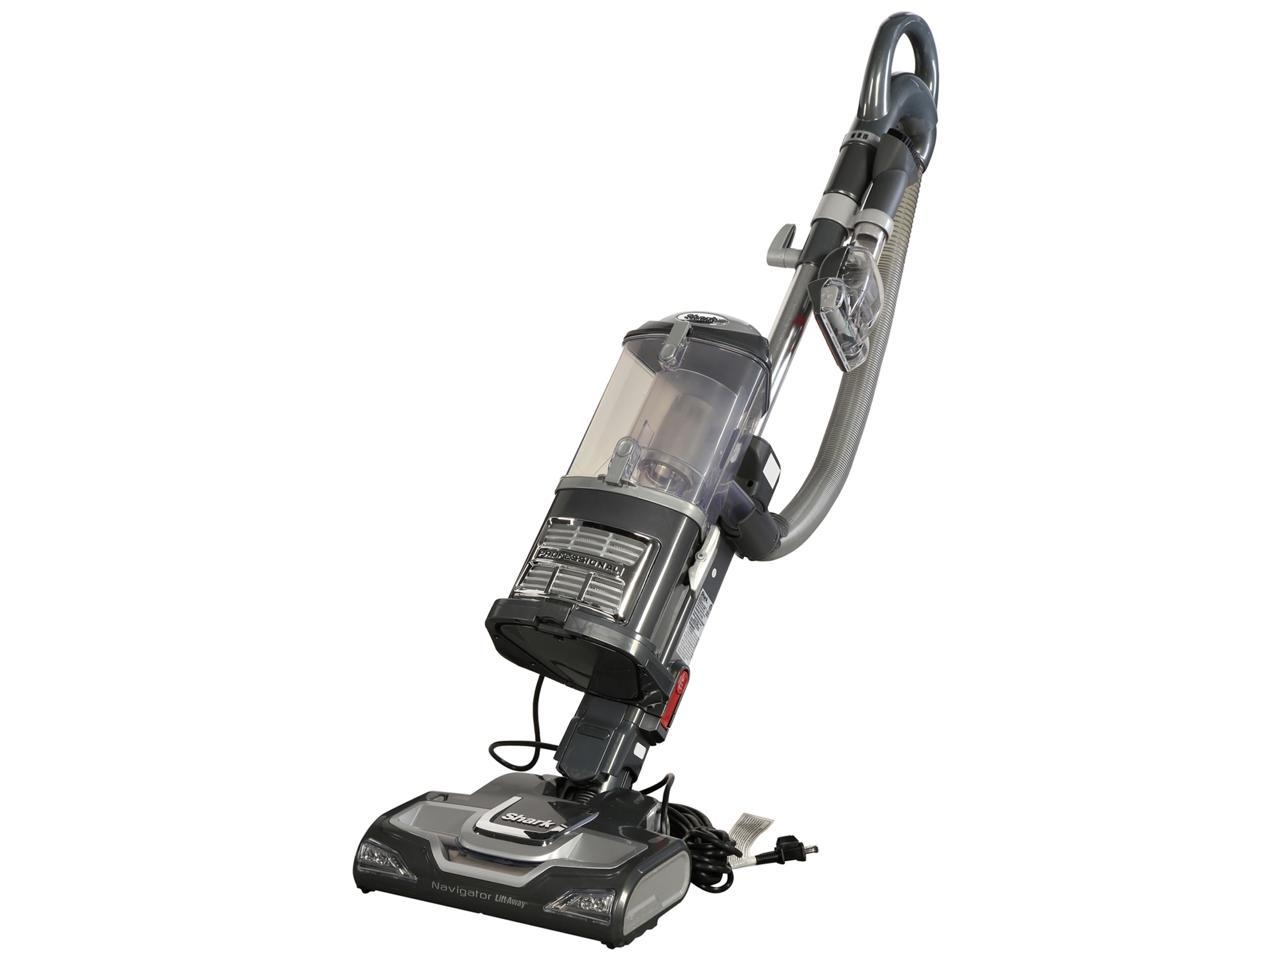 Shark-UV540-Navigator-Lift-Away-Professional-Upright-Vacuum-Gray thumbnail 2